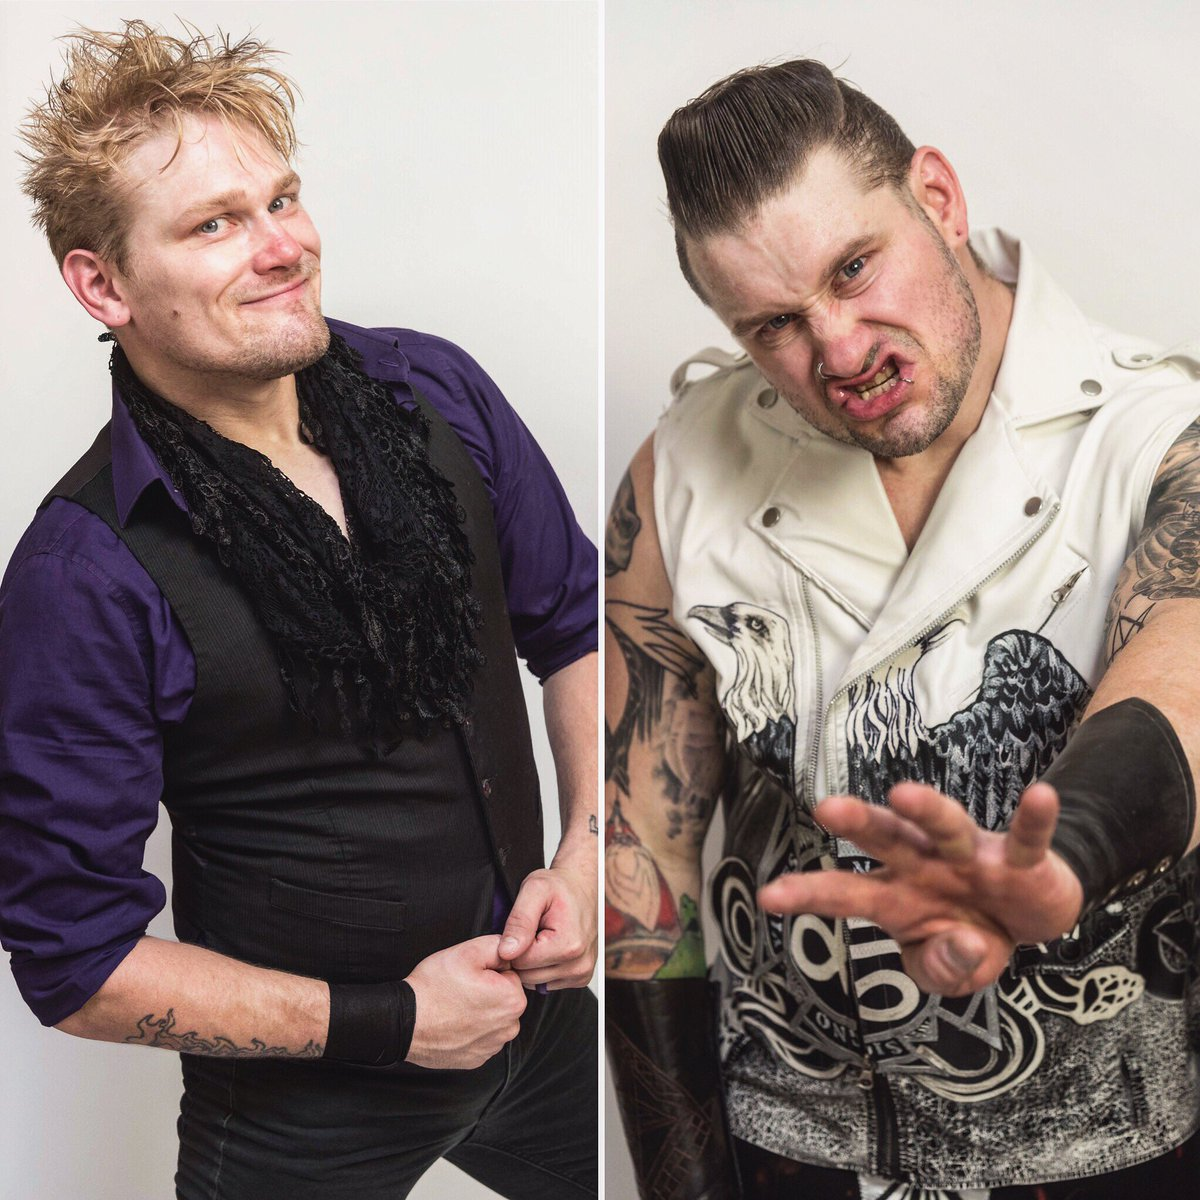 Today is your day. You&#39;re making your friends, family, fans, and hometown so proud and we know you&#39;ll KILL it! #ove #Impact #IMPACTonPOP<br>http://pic.twitter.com/yvifYu8PzW